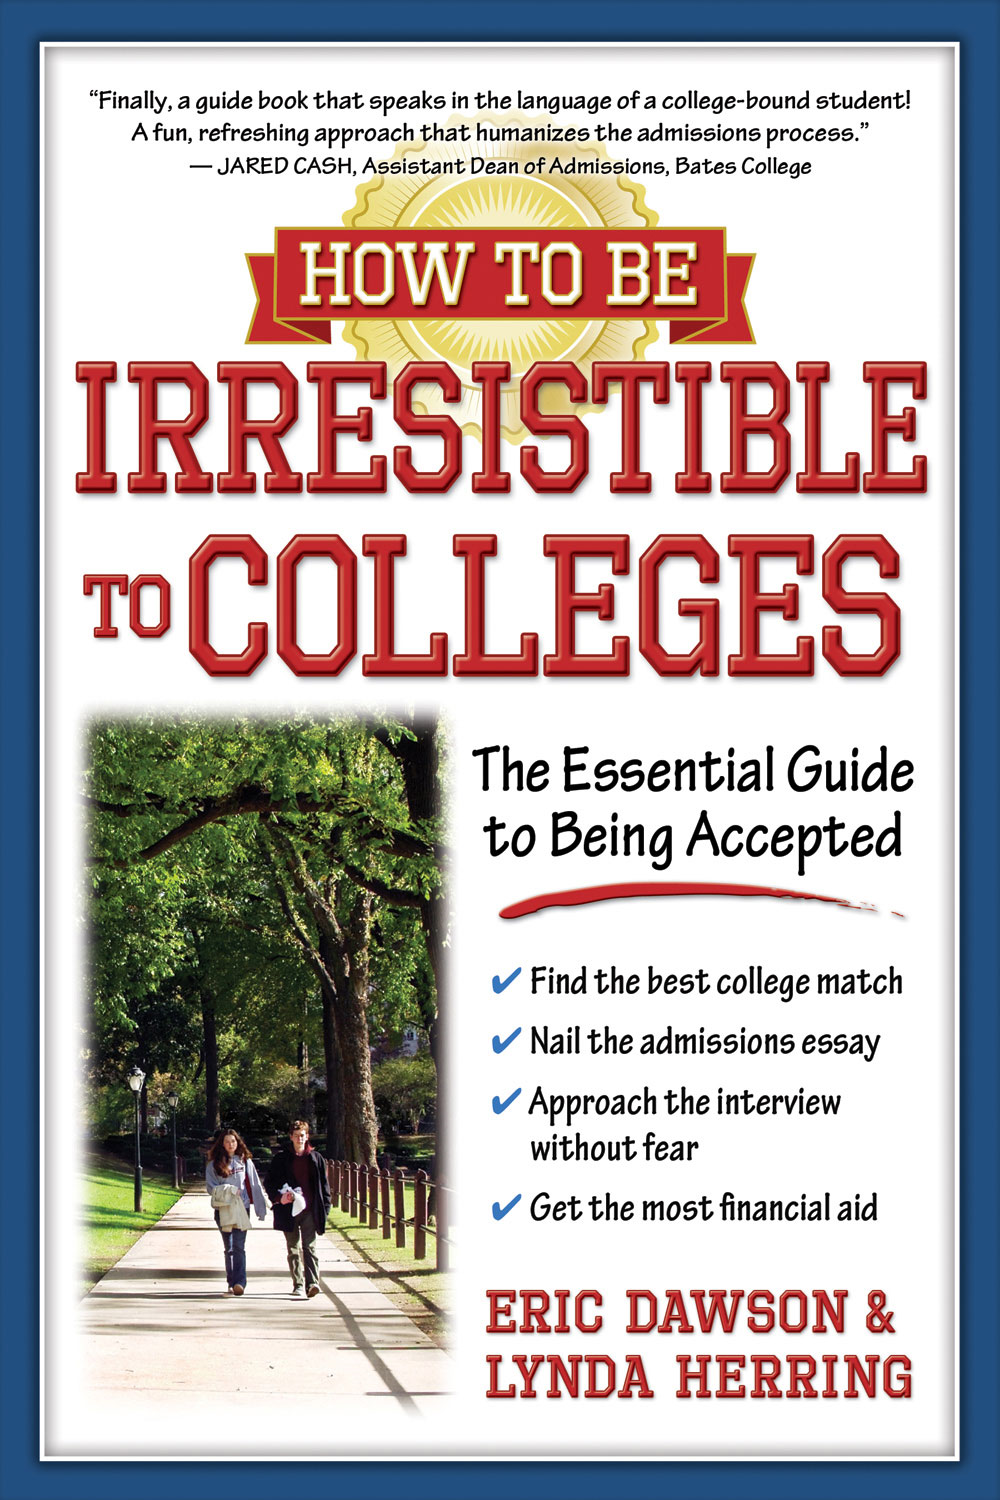 How to Be Irresistible to Colleges: The Essential Guide to Being Accepted